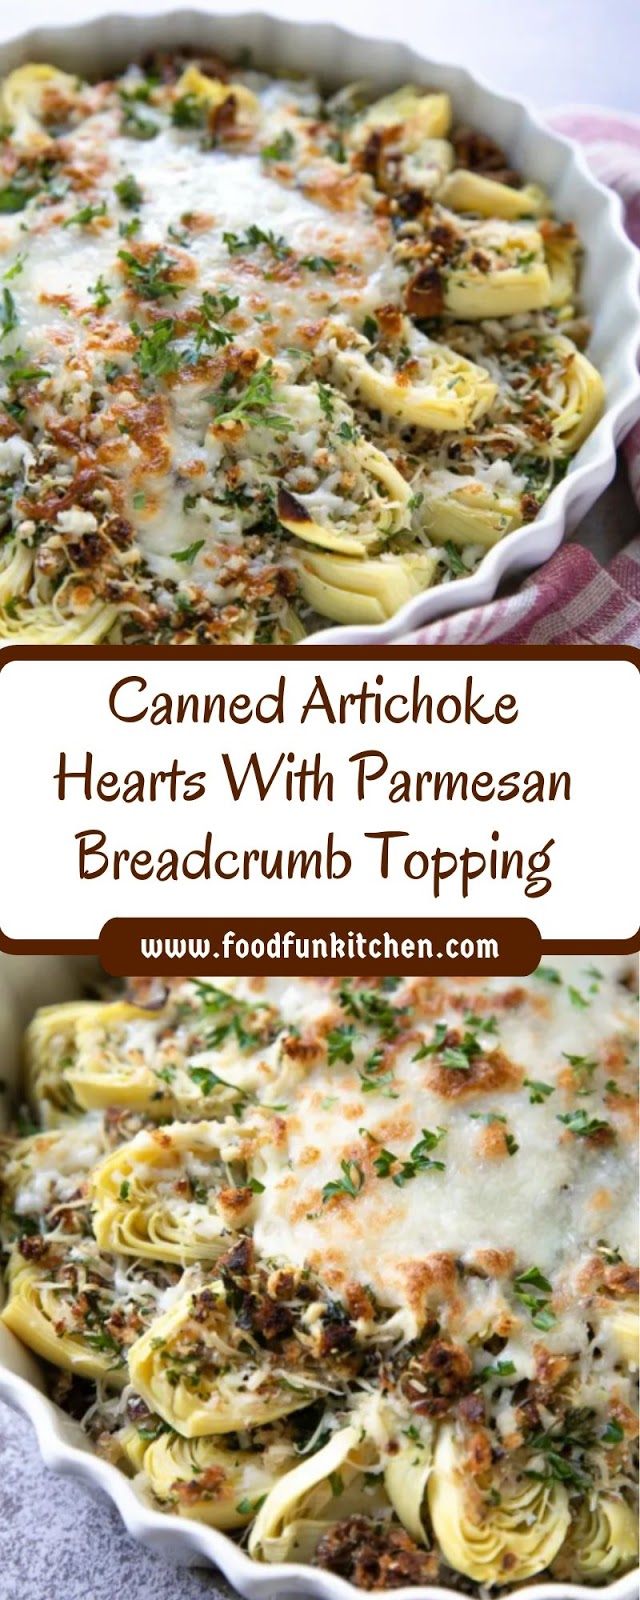 CANNED ARTICHOKE HEARTS WITH PARMESAN BREADCRUMB TOPPING